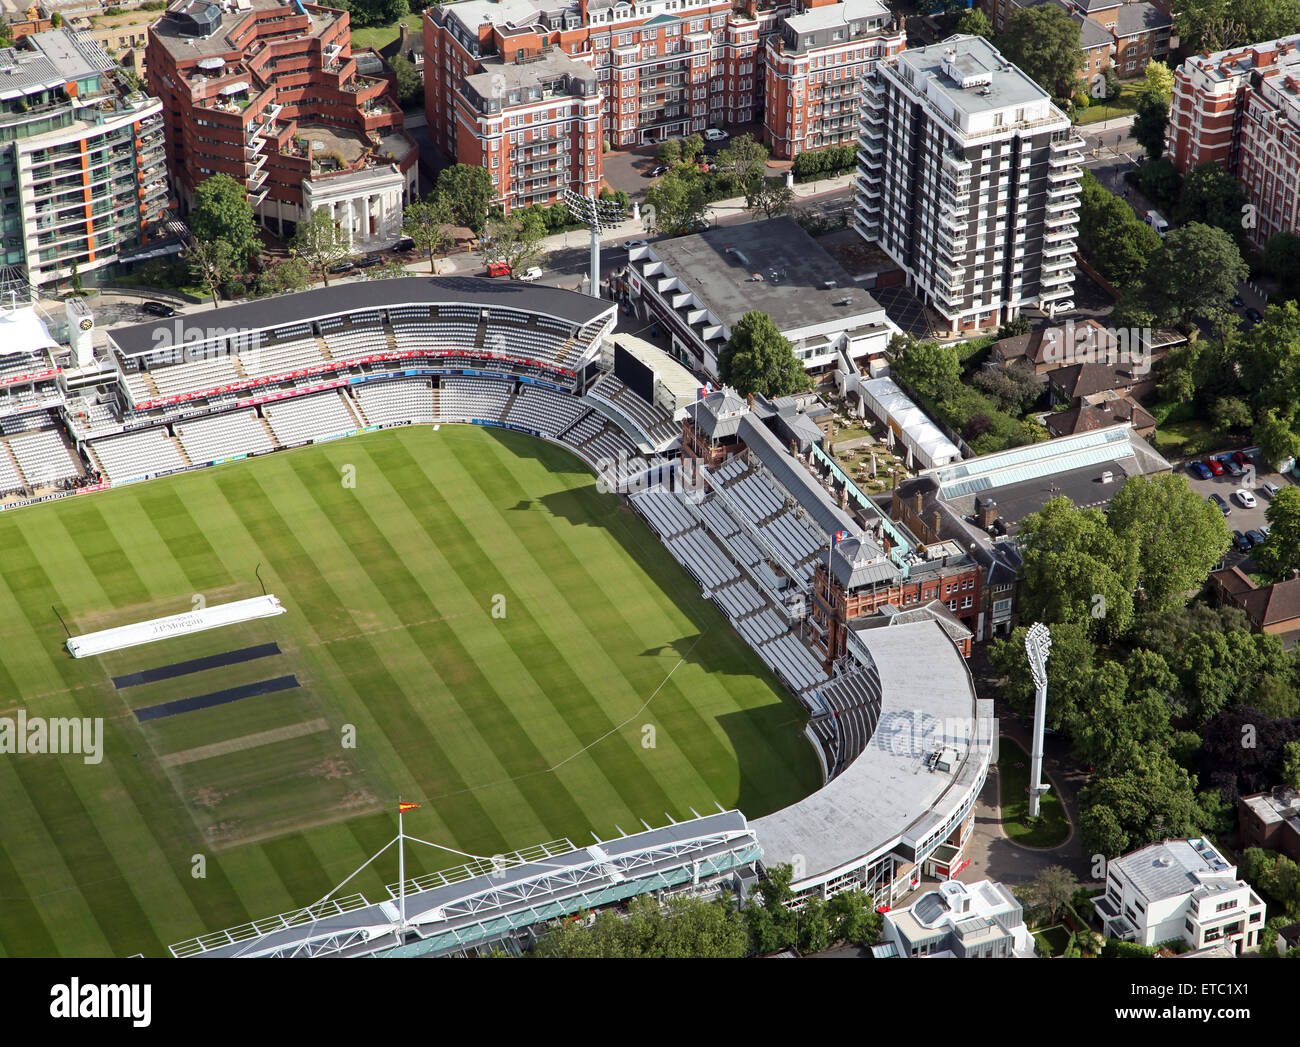 aerial view of the Lords cricket Ground pavilion, St Johns Wood, London, UK - Stock Image